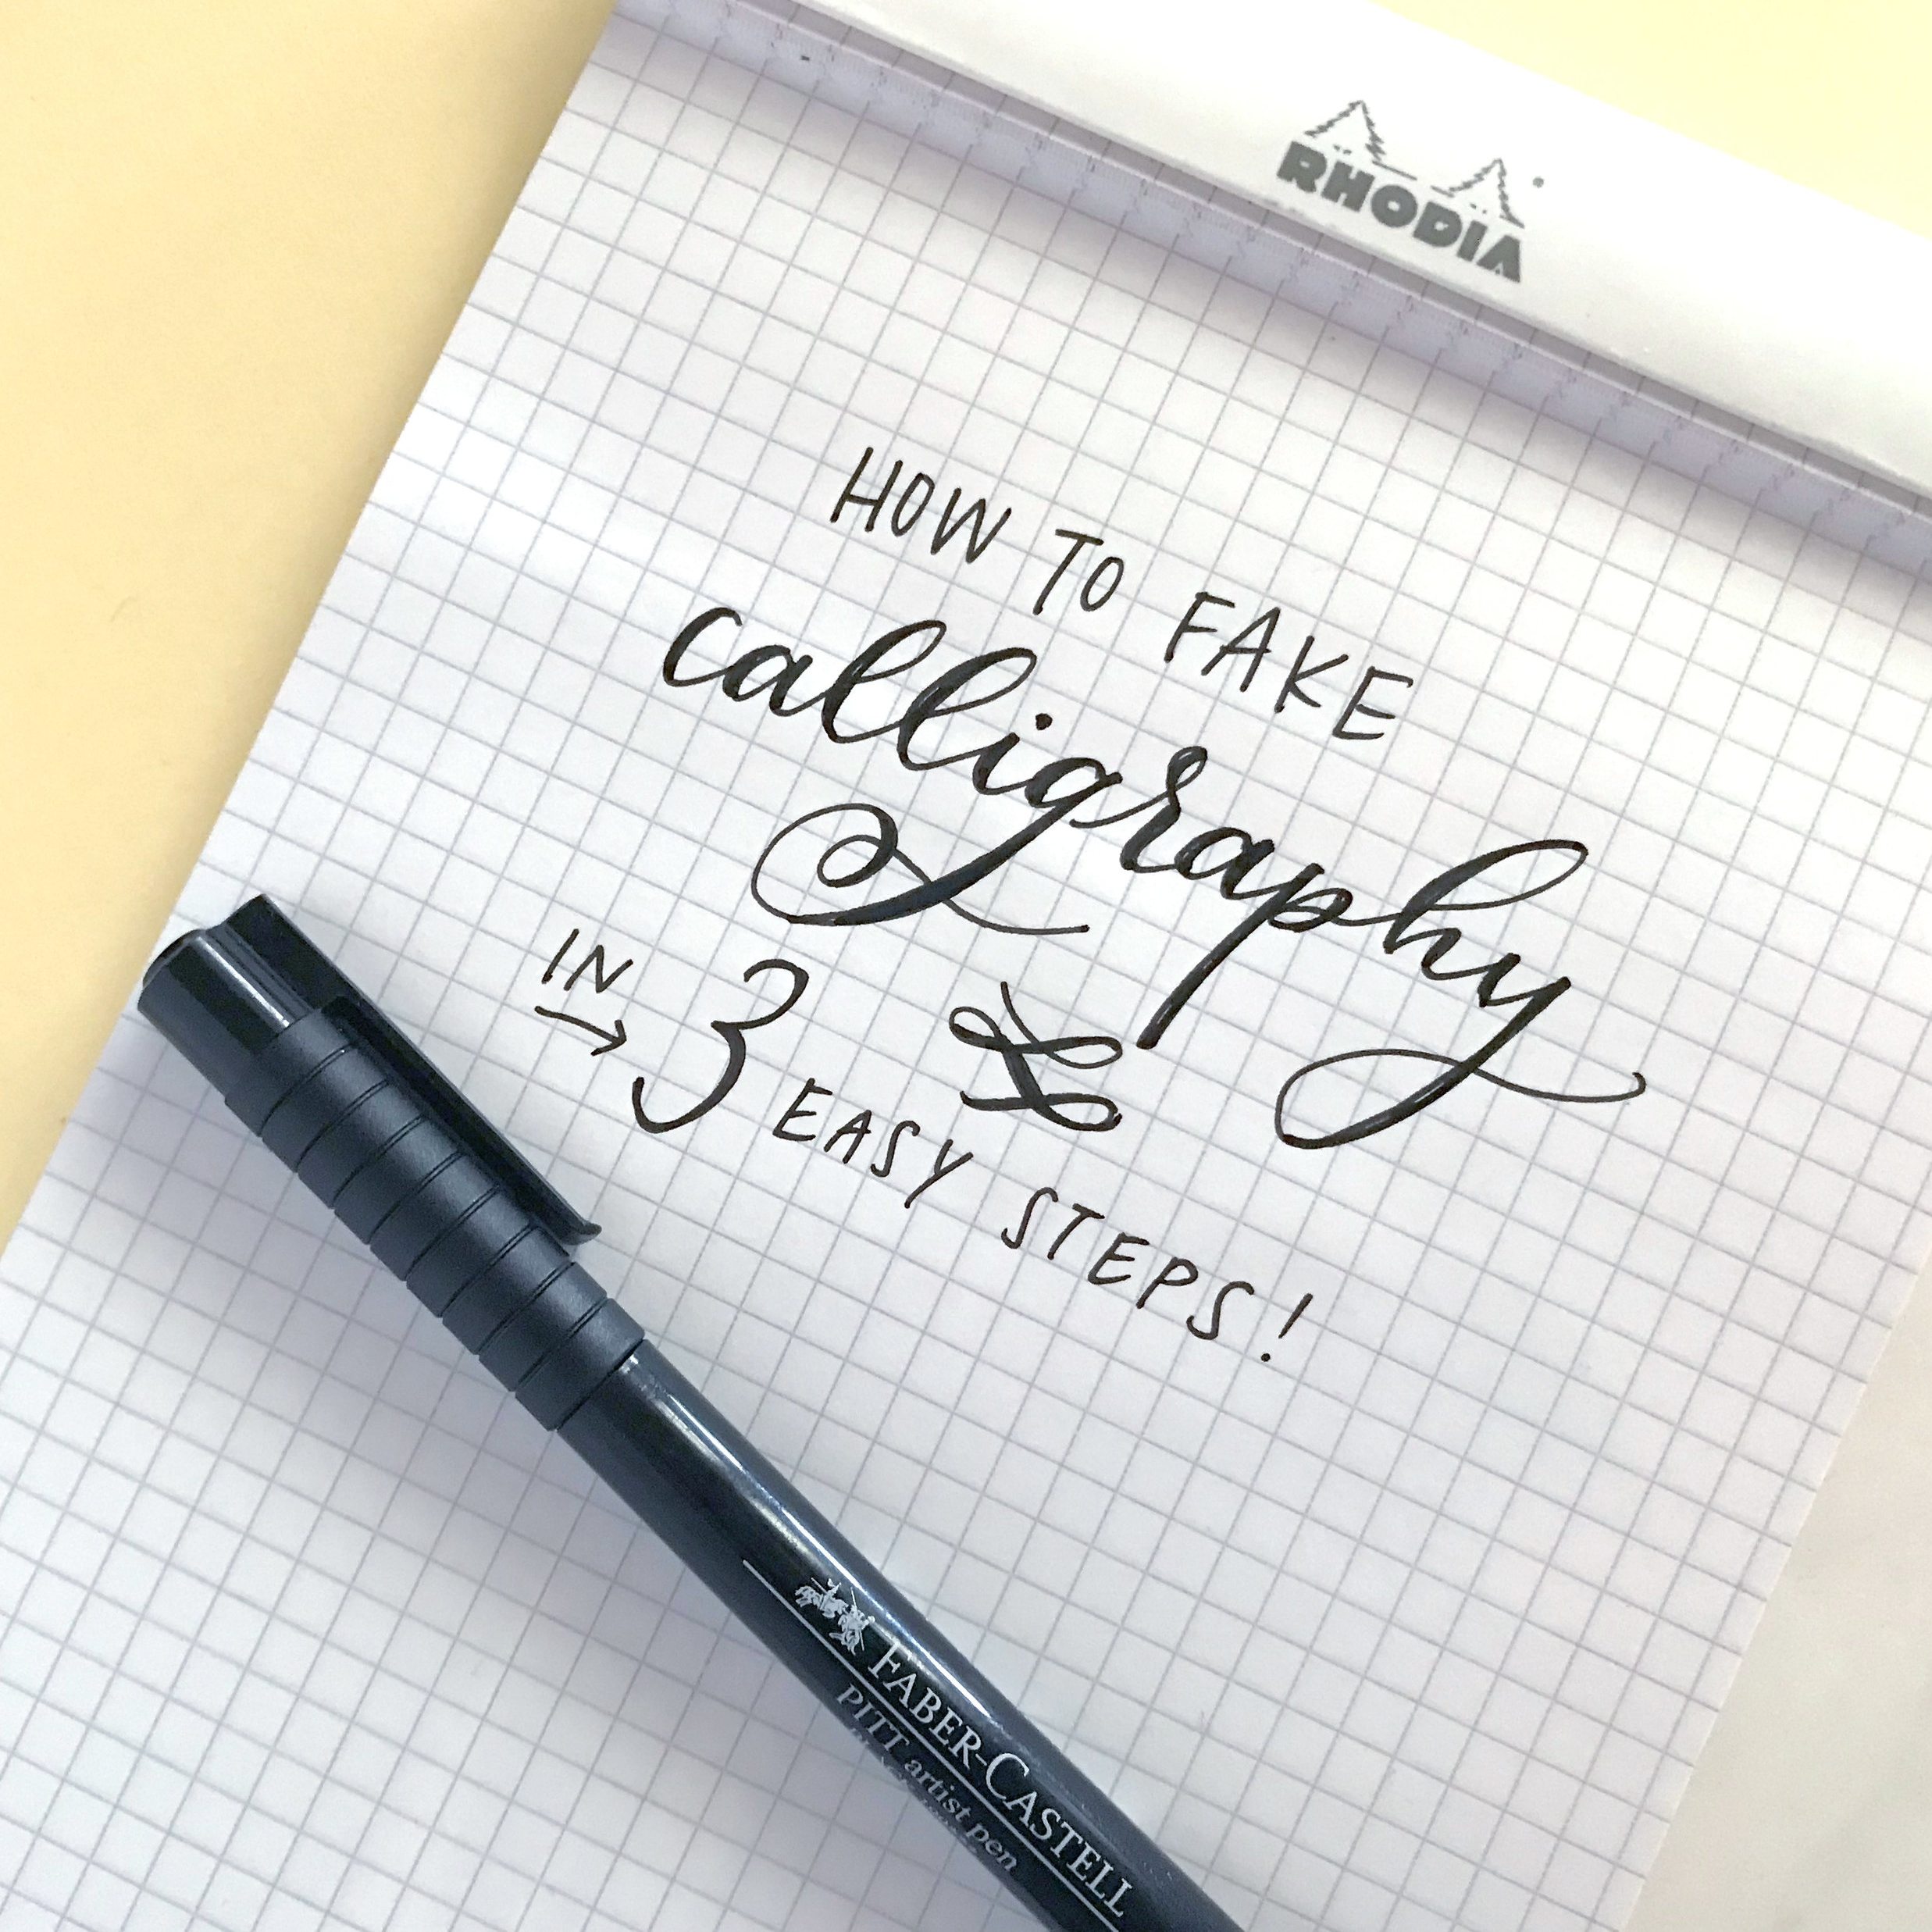 Fiber & Dye | No-Nib Calligraphy in just 3 steps